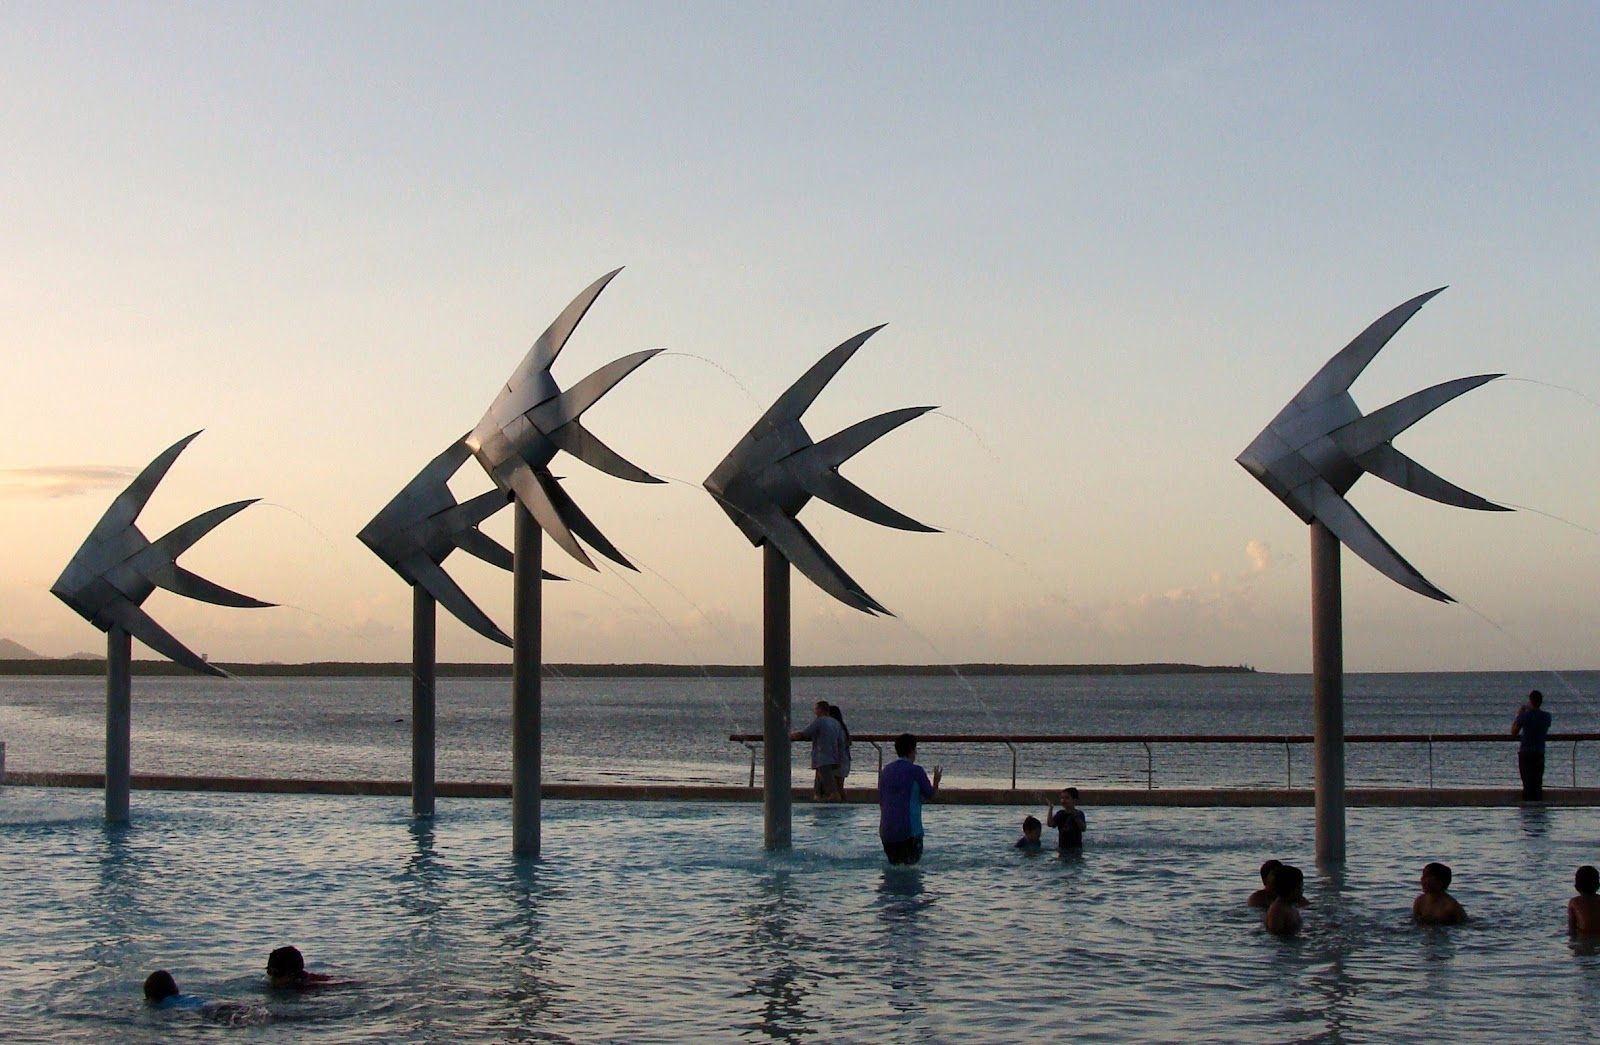 the-lagoon-on-cairns-esplanade-at-sunset-in-queensland-australia.jpg